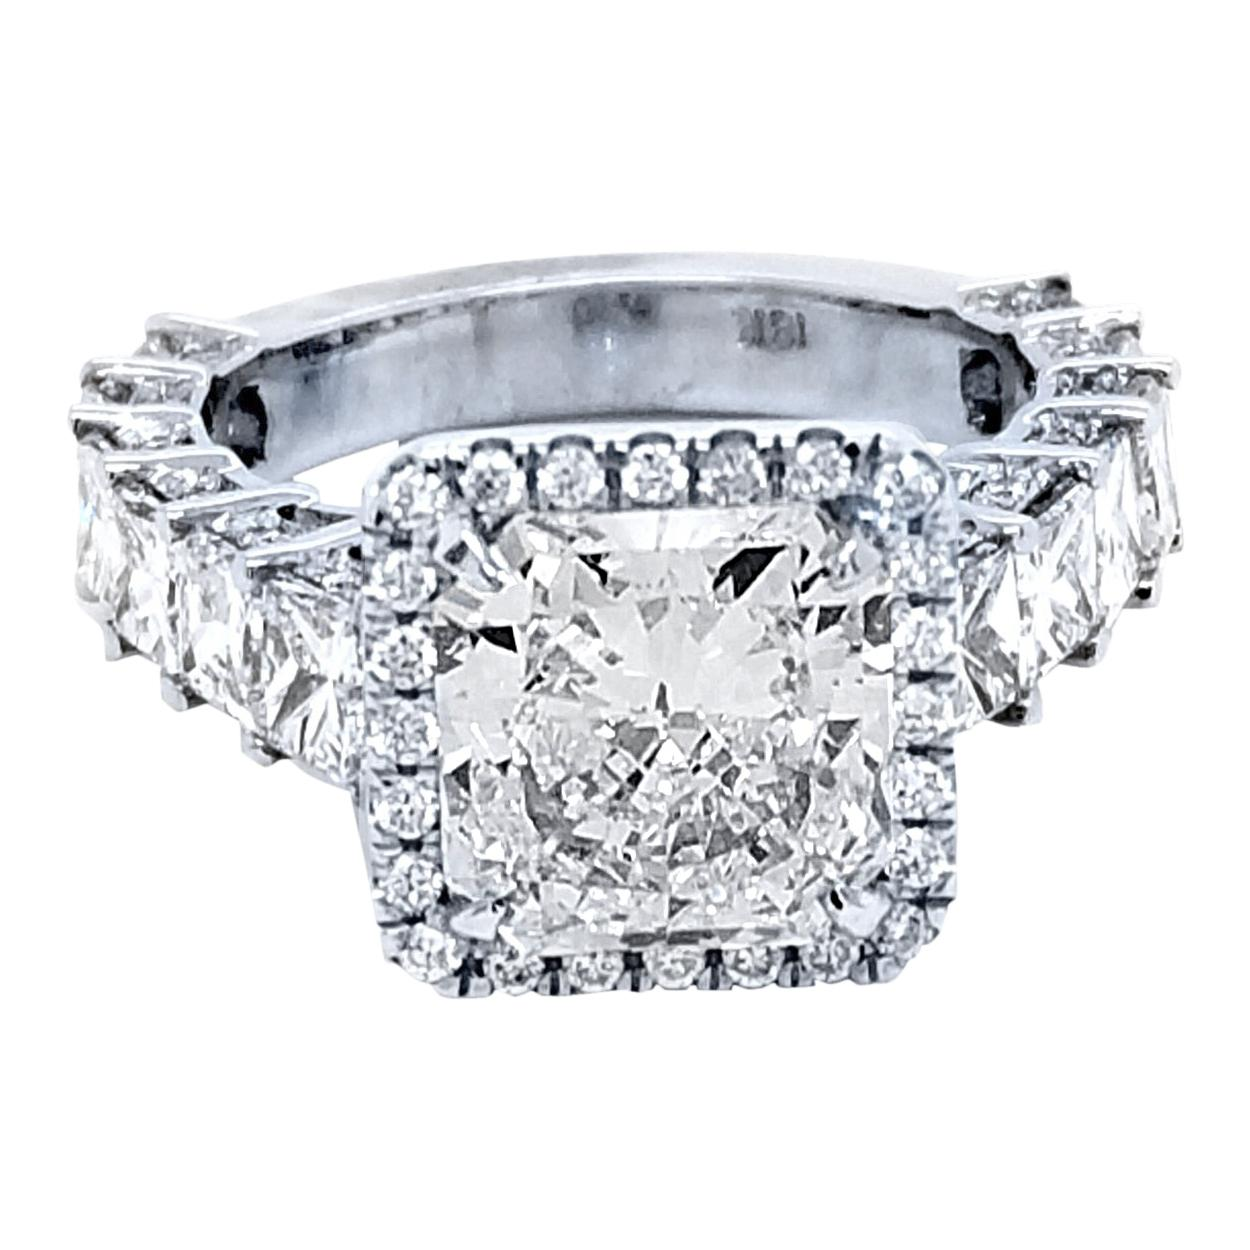 GIA 3.15 Ct E/SI1 Radiant Diamond 18K Pave/Prong Set Engagement Ring with Halo